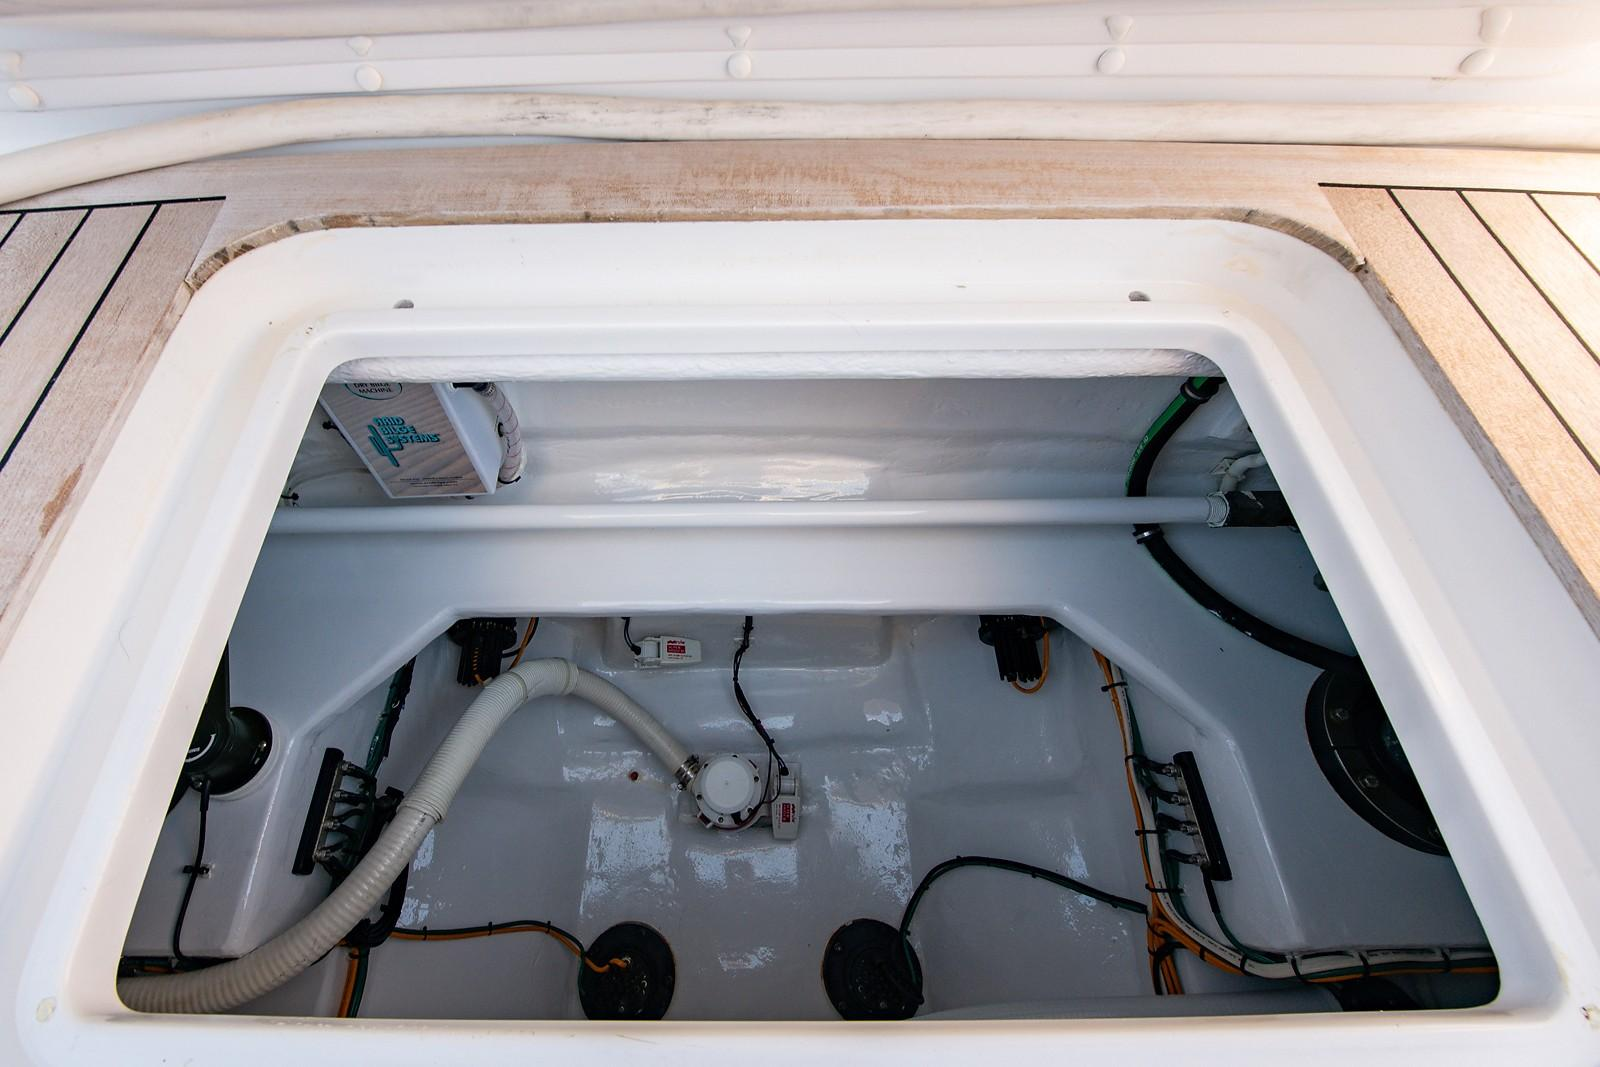 2002 65 83 ft Yacht For Sale   Allied Marine